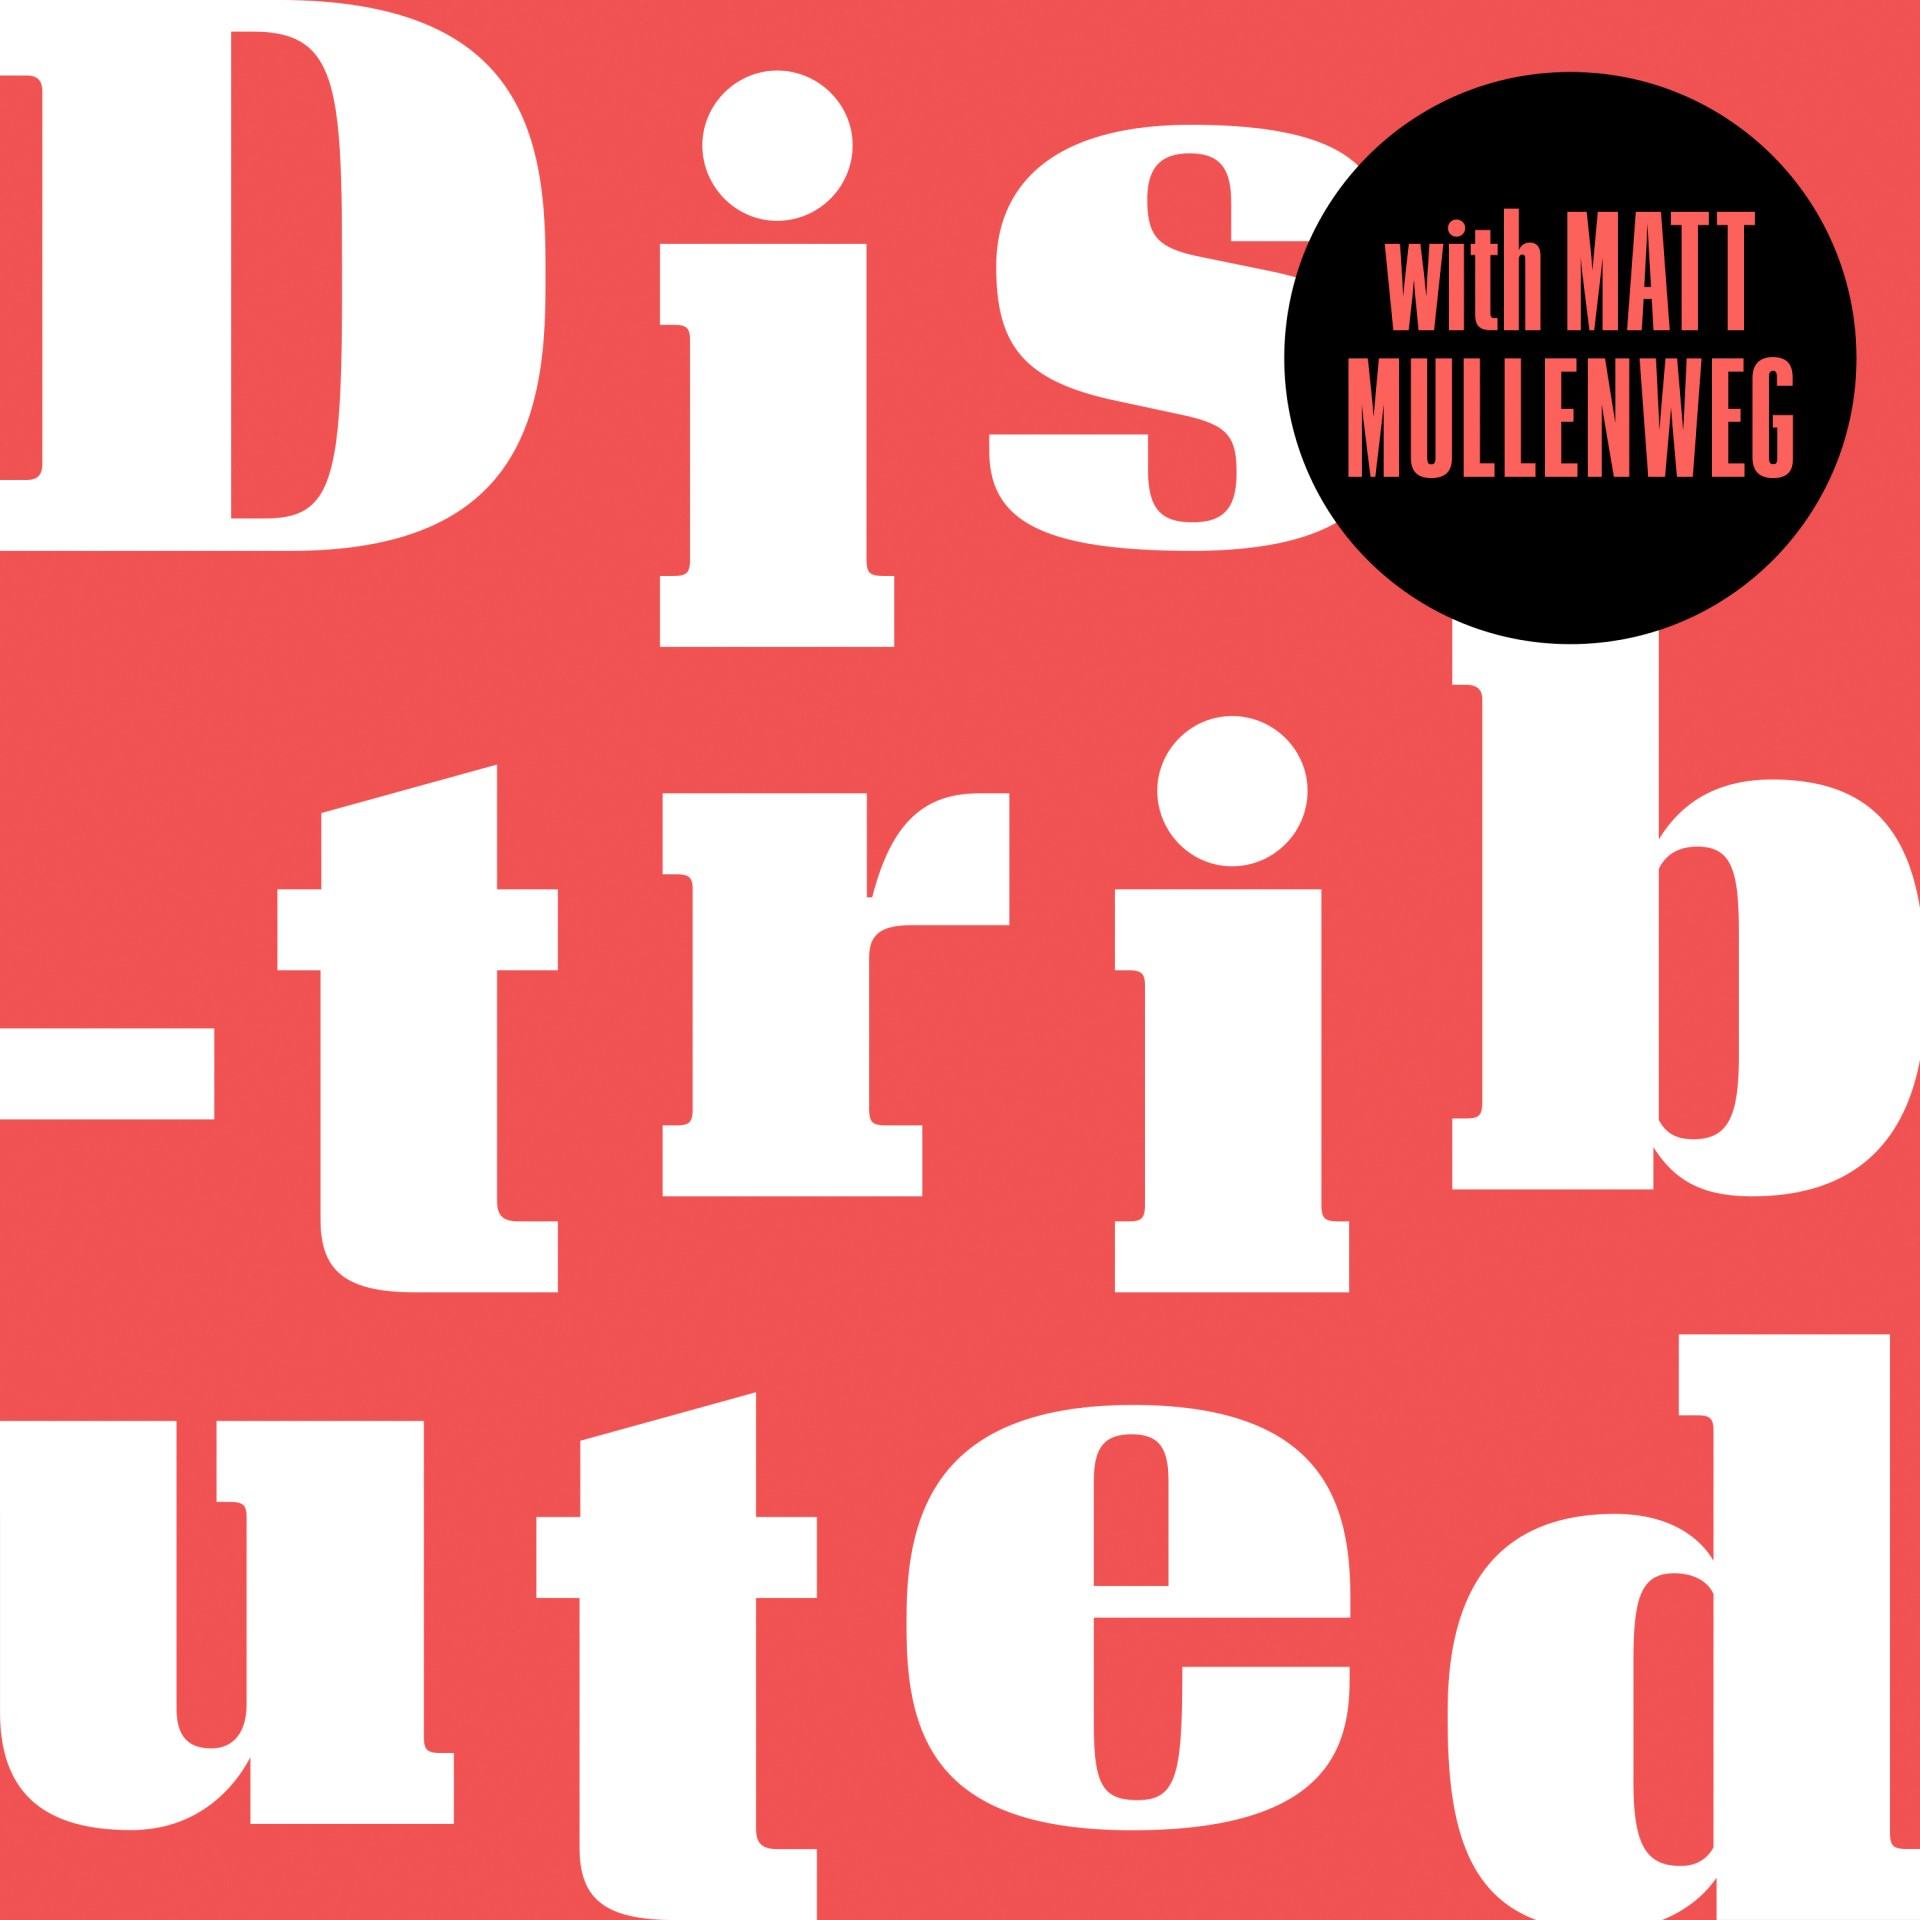 Introducing the Distributed Podcast